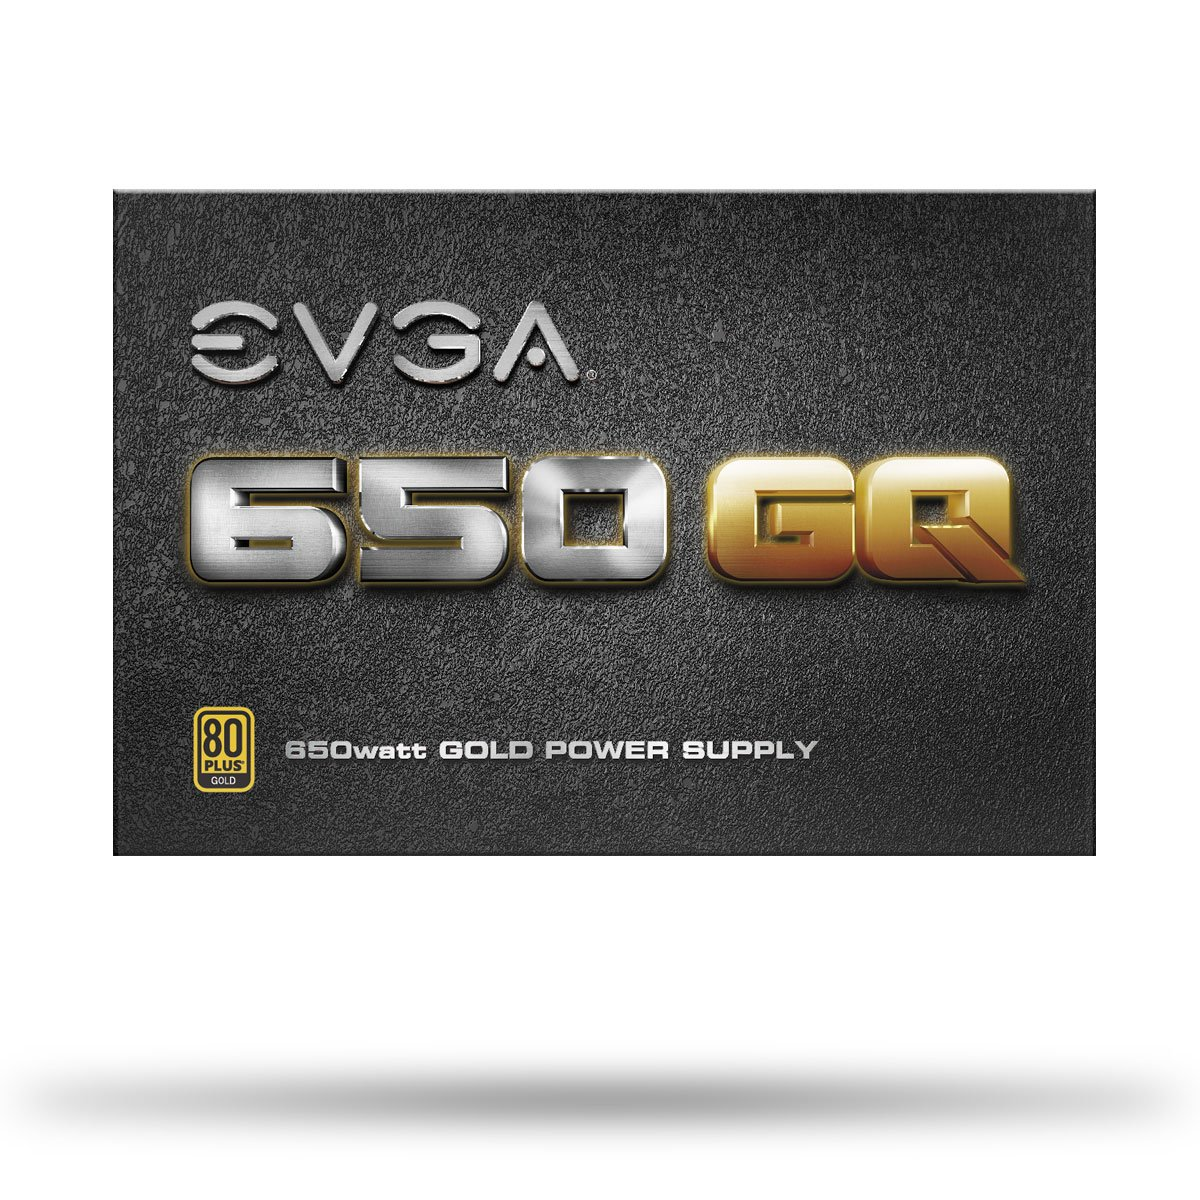 Includes Power ON Self Tester 7 Year Warranty Compact 150mm Size Power Supply 220-G3-0650-Y1 80 Plus Gold 650W Fully Modular EVGA Supernova 650 G3 Eco Mode with New HDB Fan